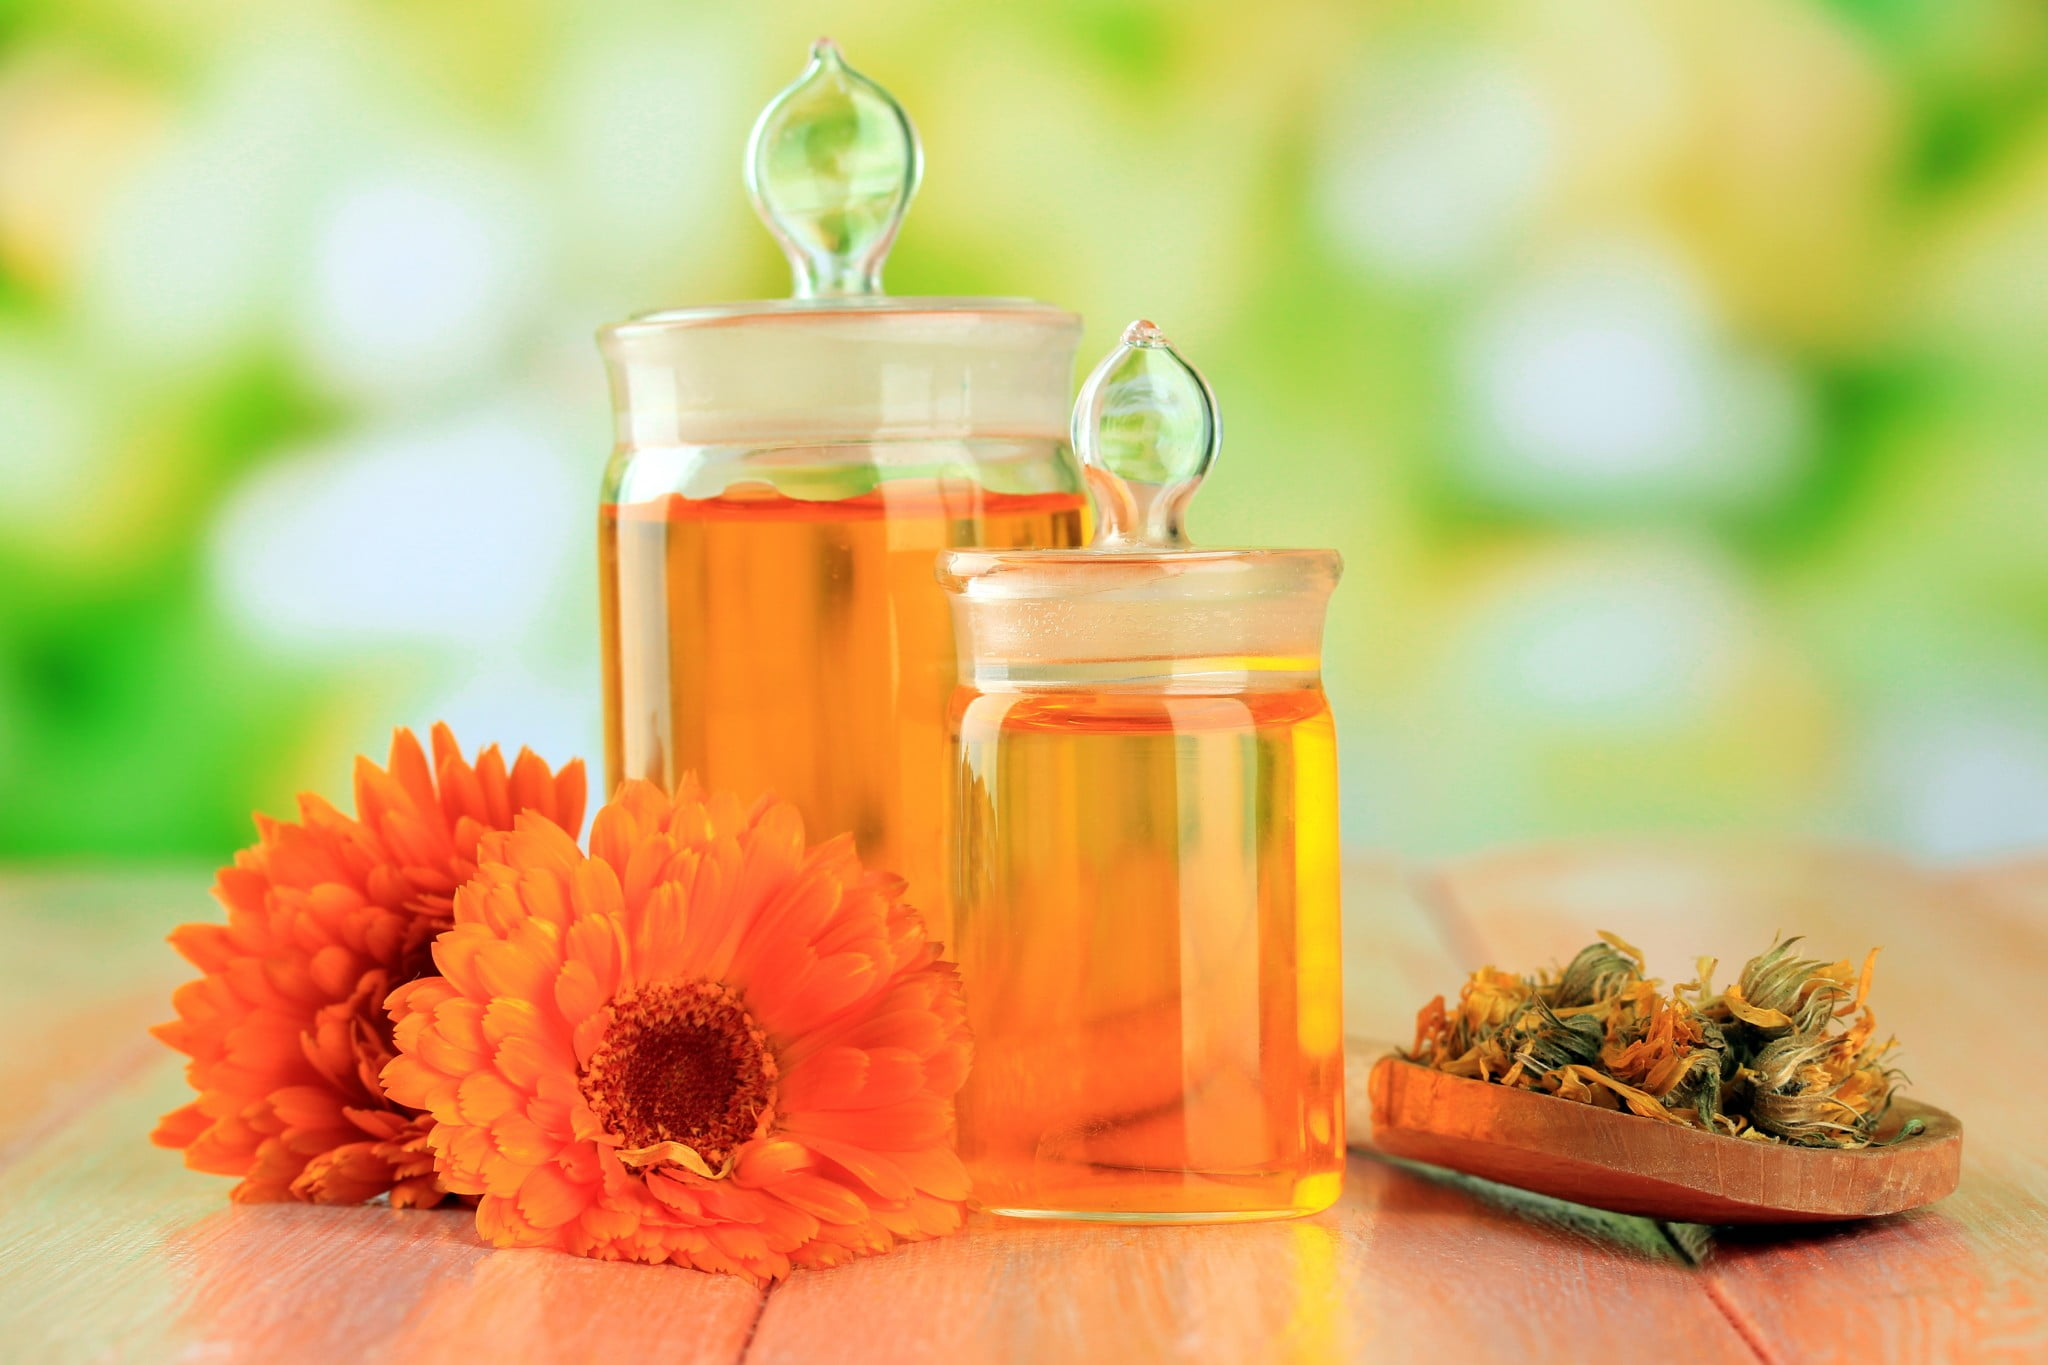 homeopathic products - jars of orange liquid and some flowers